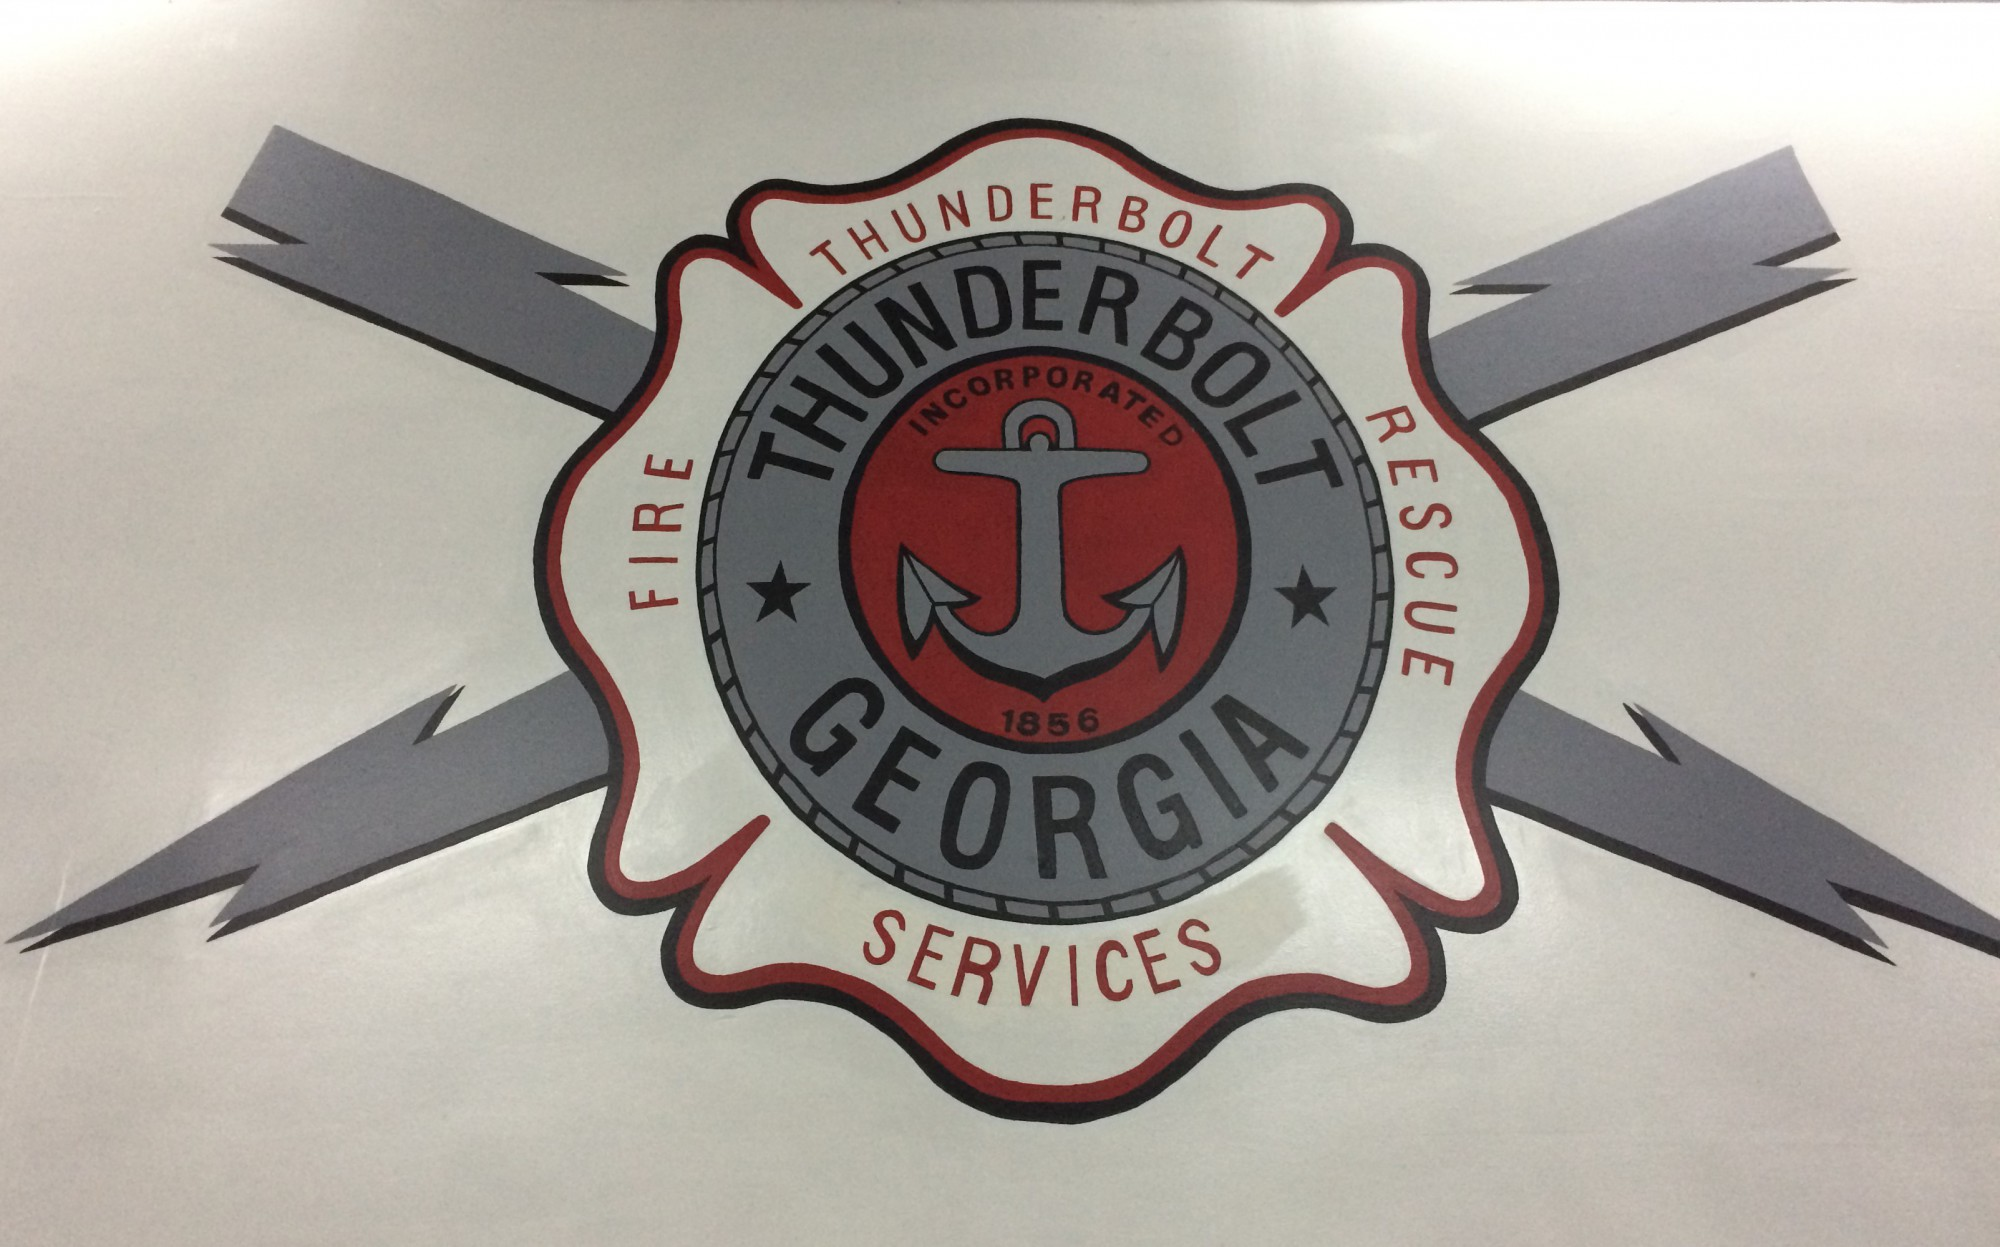 Thunderbolt, Georgia Fire Dept